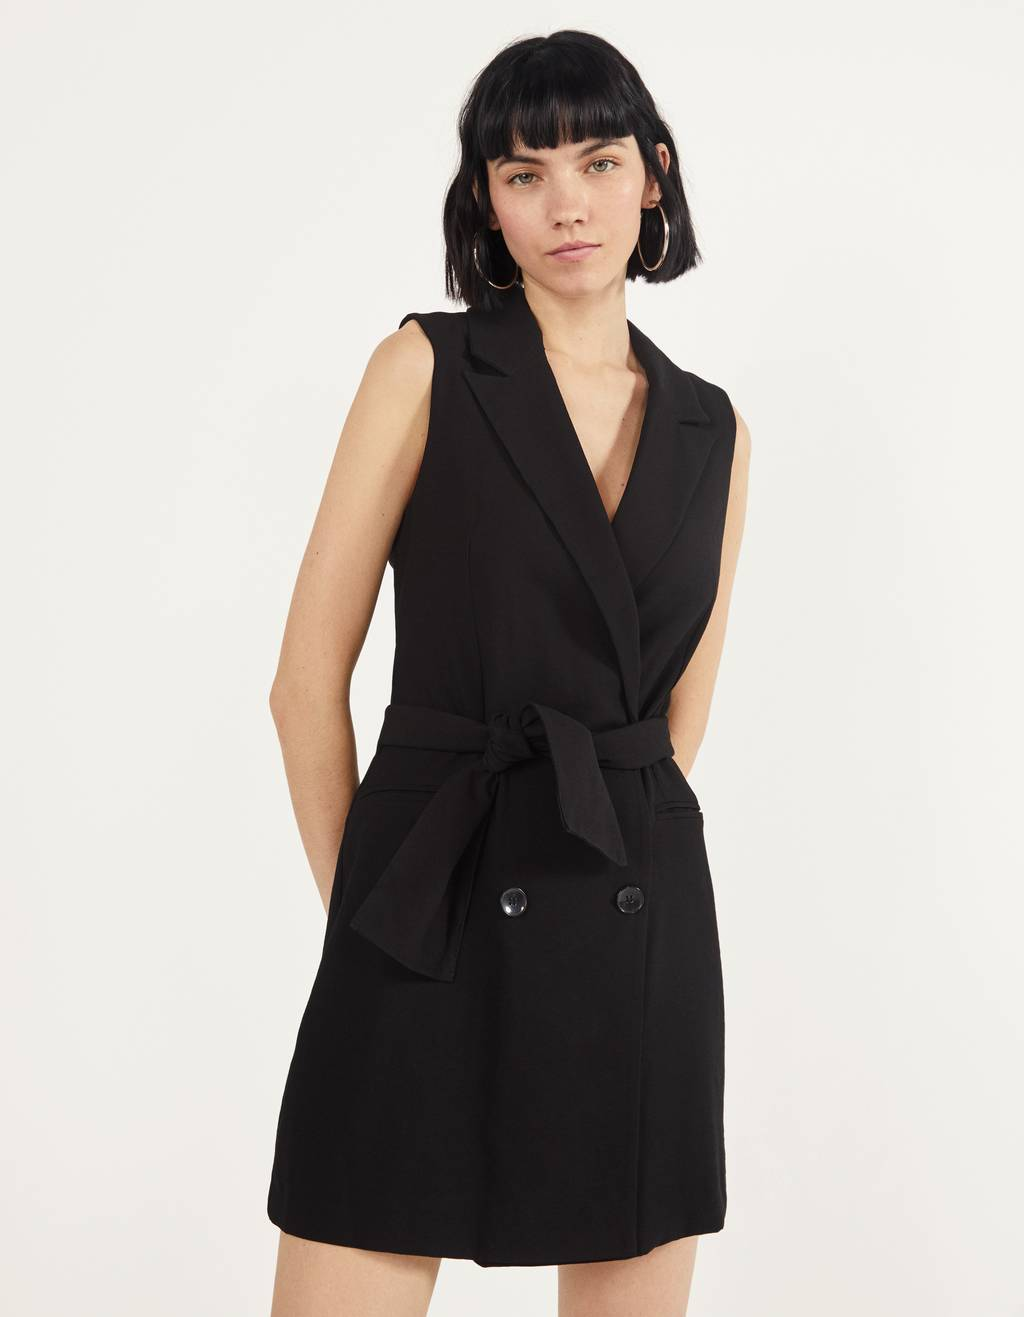 Blazer-style gilet with a belt